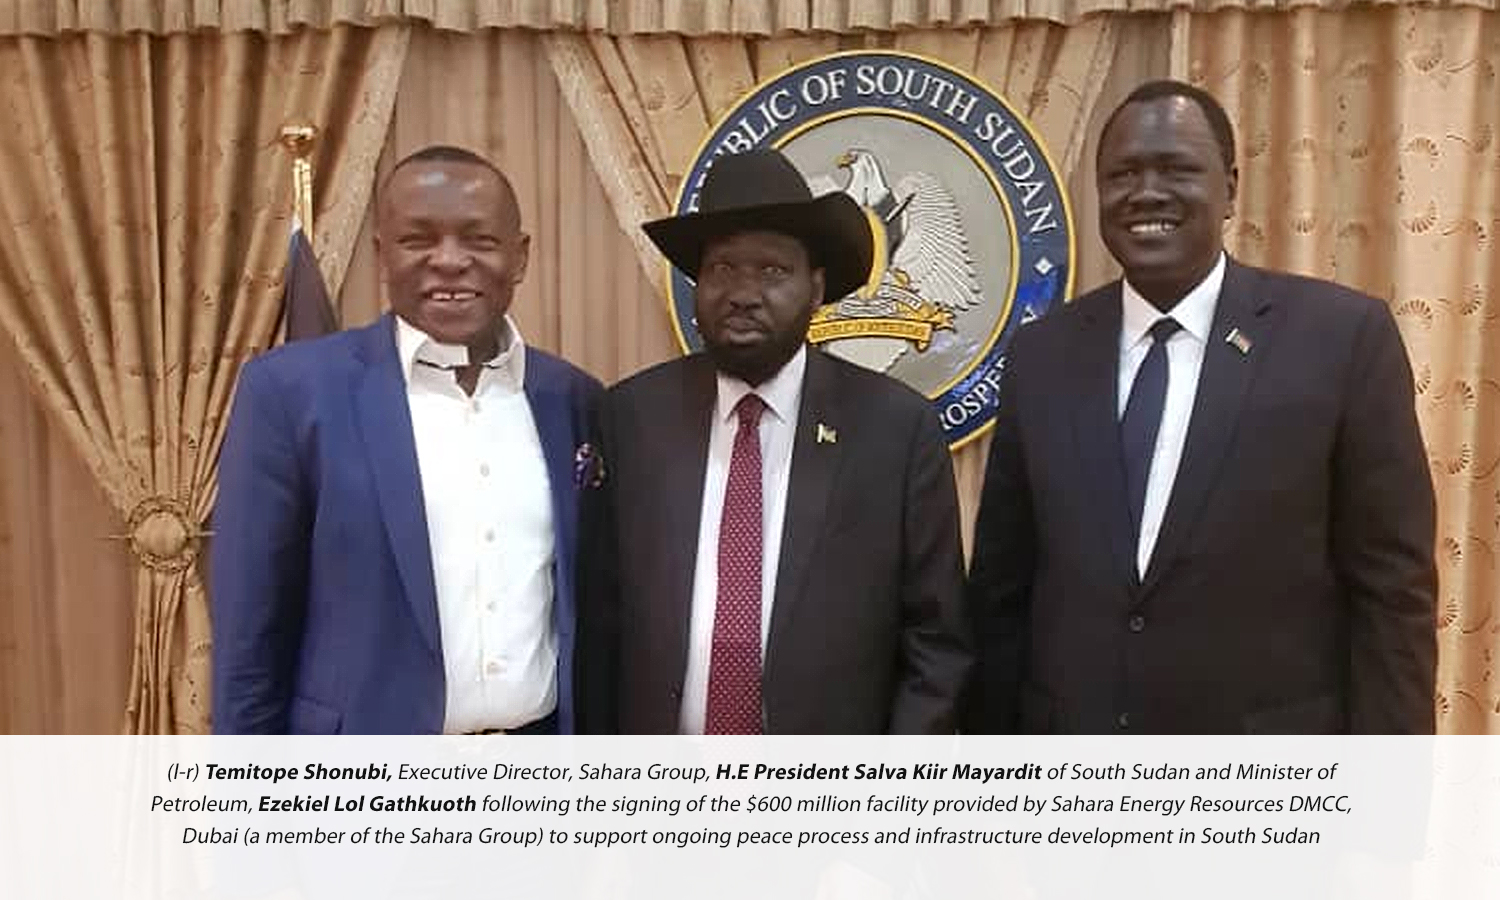 (l-r) Temitope Shonubi, Executive Director, Sahara Group, H.E President Salva Kiir Mayardit of South Sudan and Minister of Petroleum, Ezekiel Lol Gathkuoth following the signing of the $600 million facility provided by Sahara Energy Resources DMCC, Dubai (a member of the Sahara Group) to support ongoing peace process and infrastructure development in South Sudan